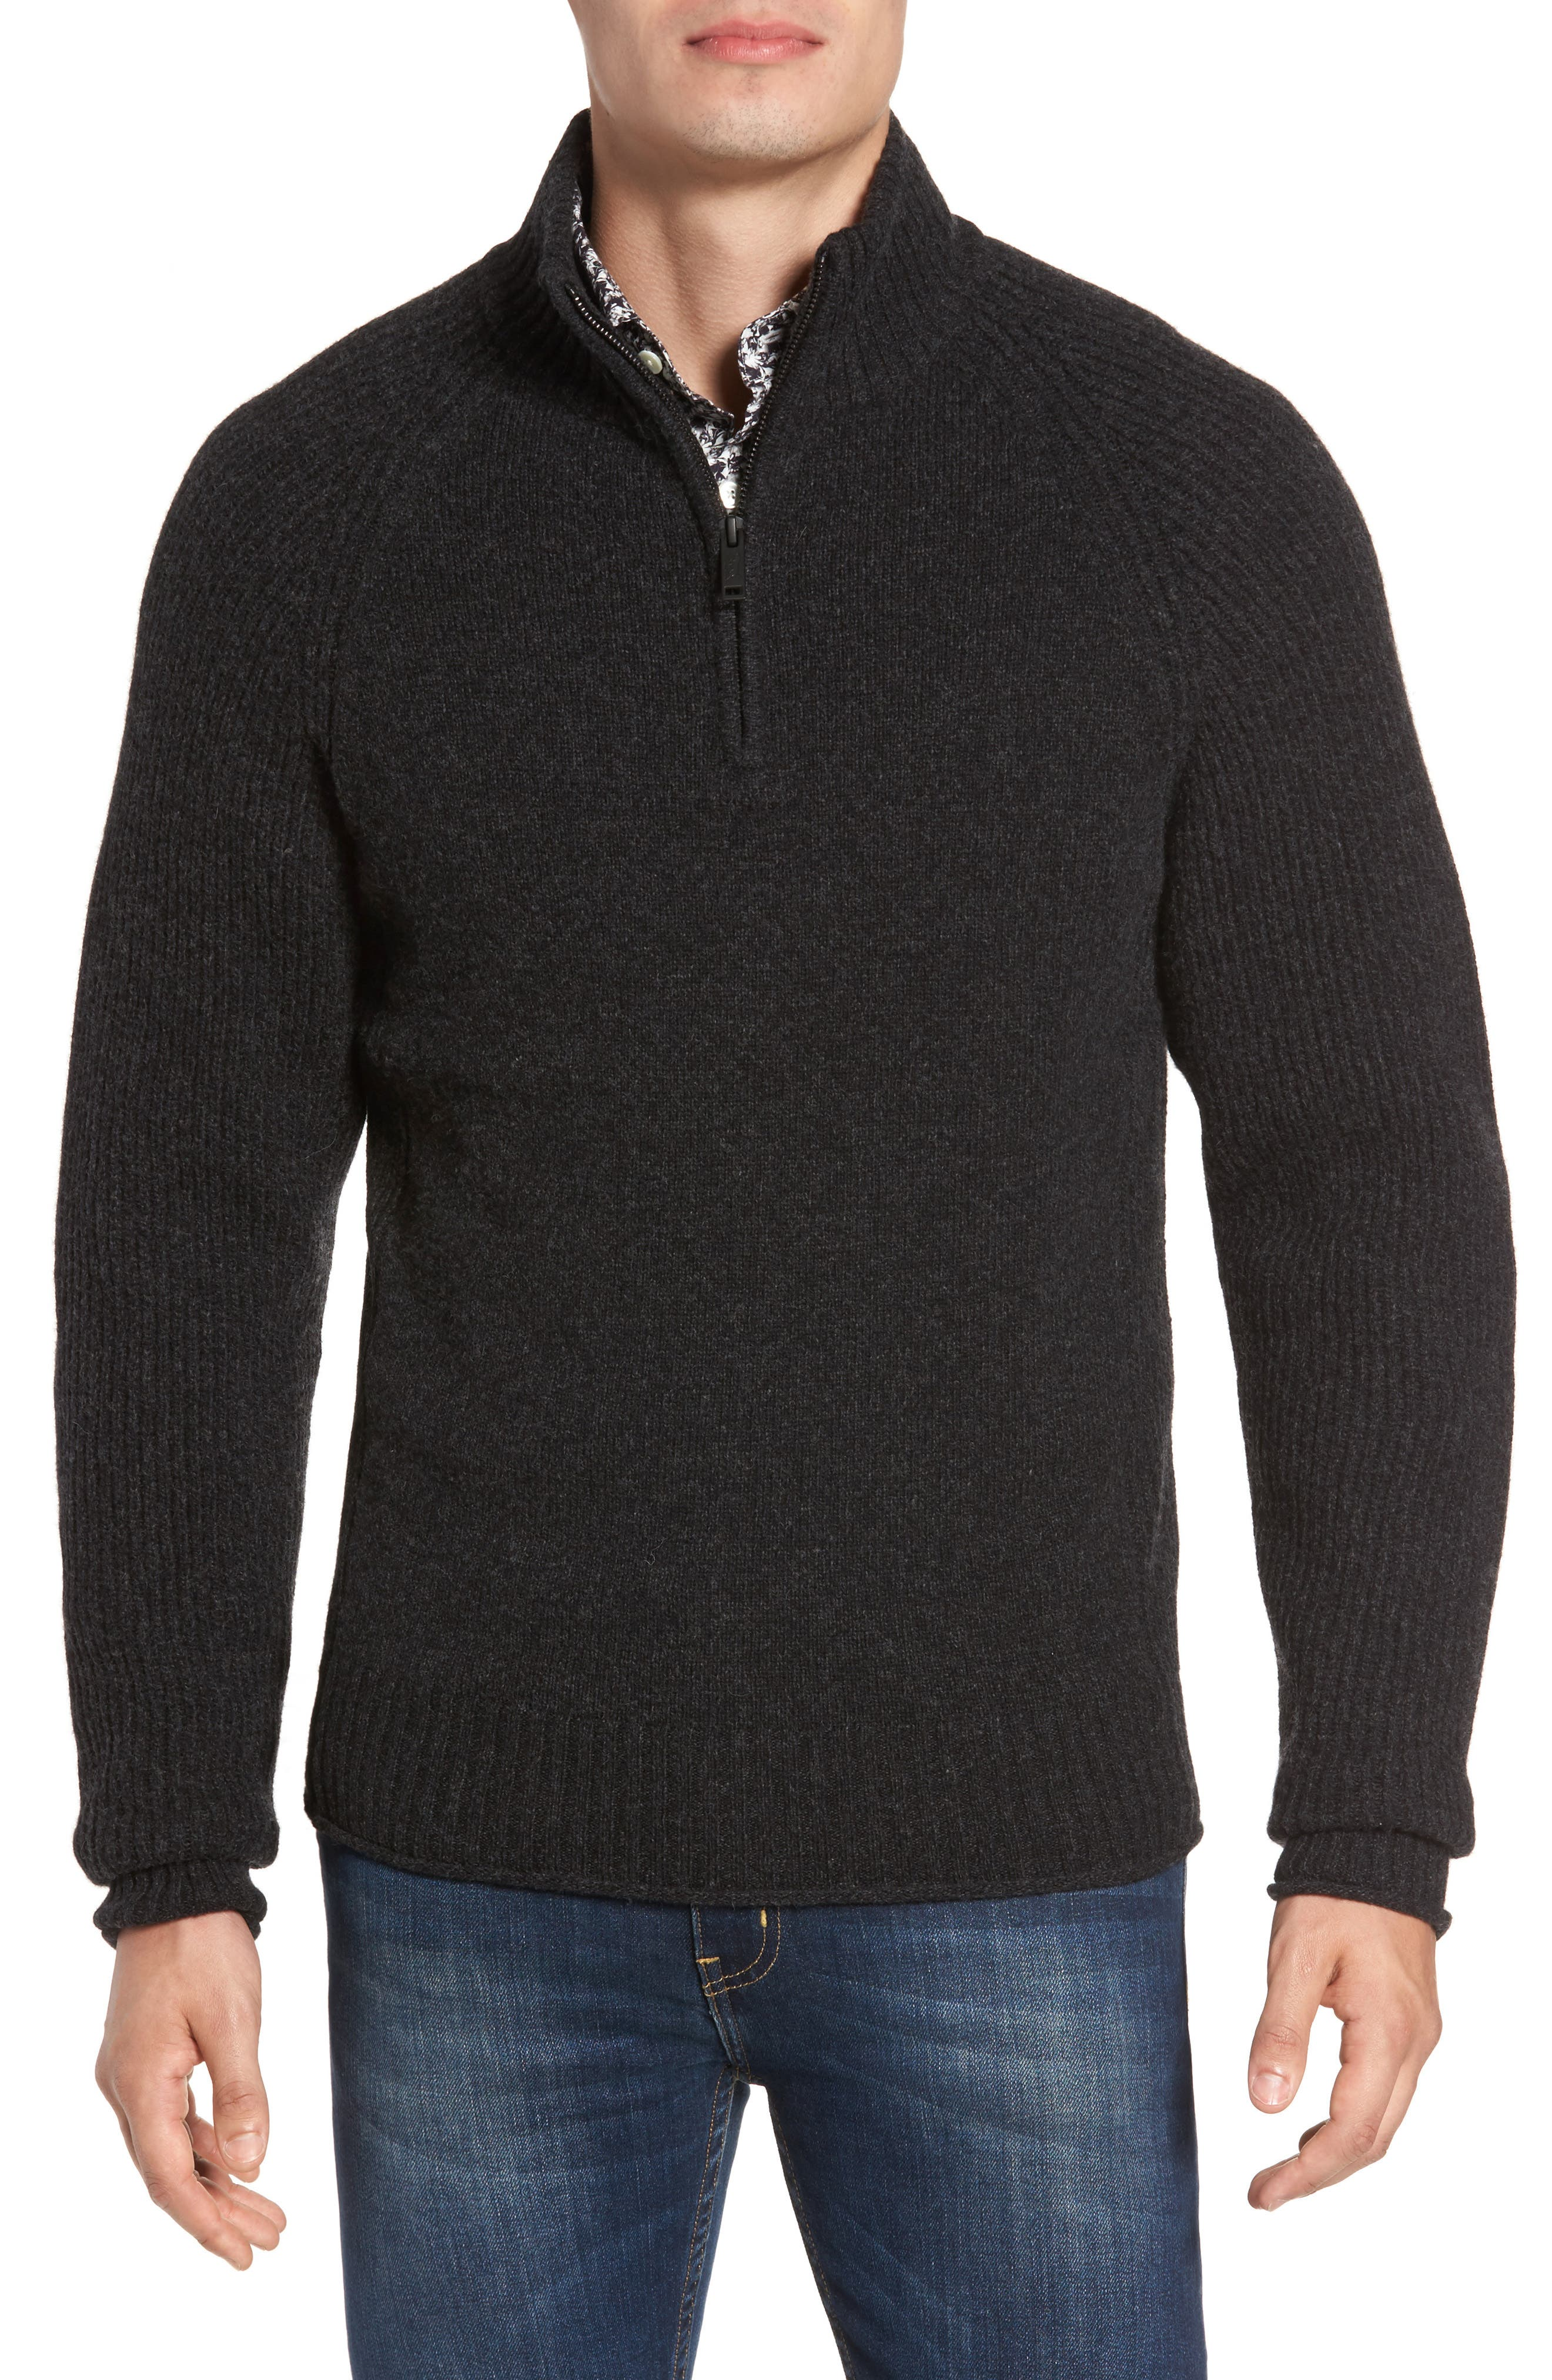 Stredwick Lambswool Sweater,                         Main,                         color,